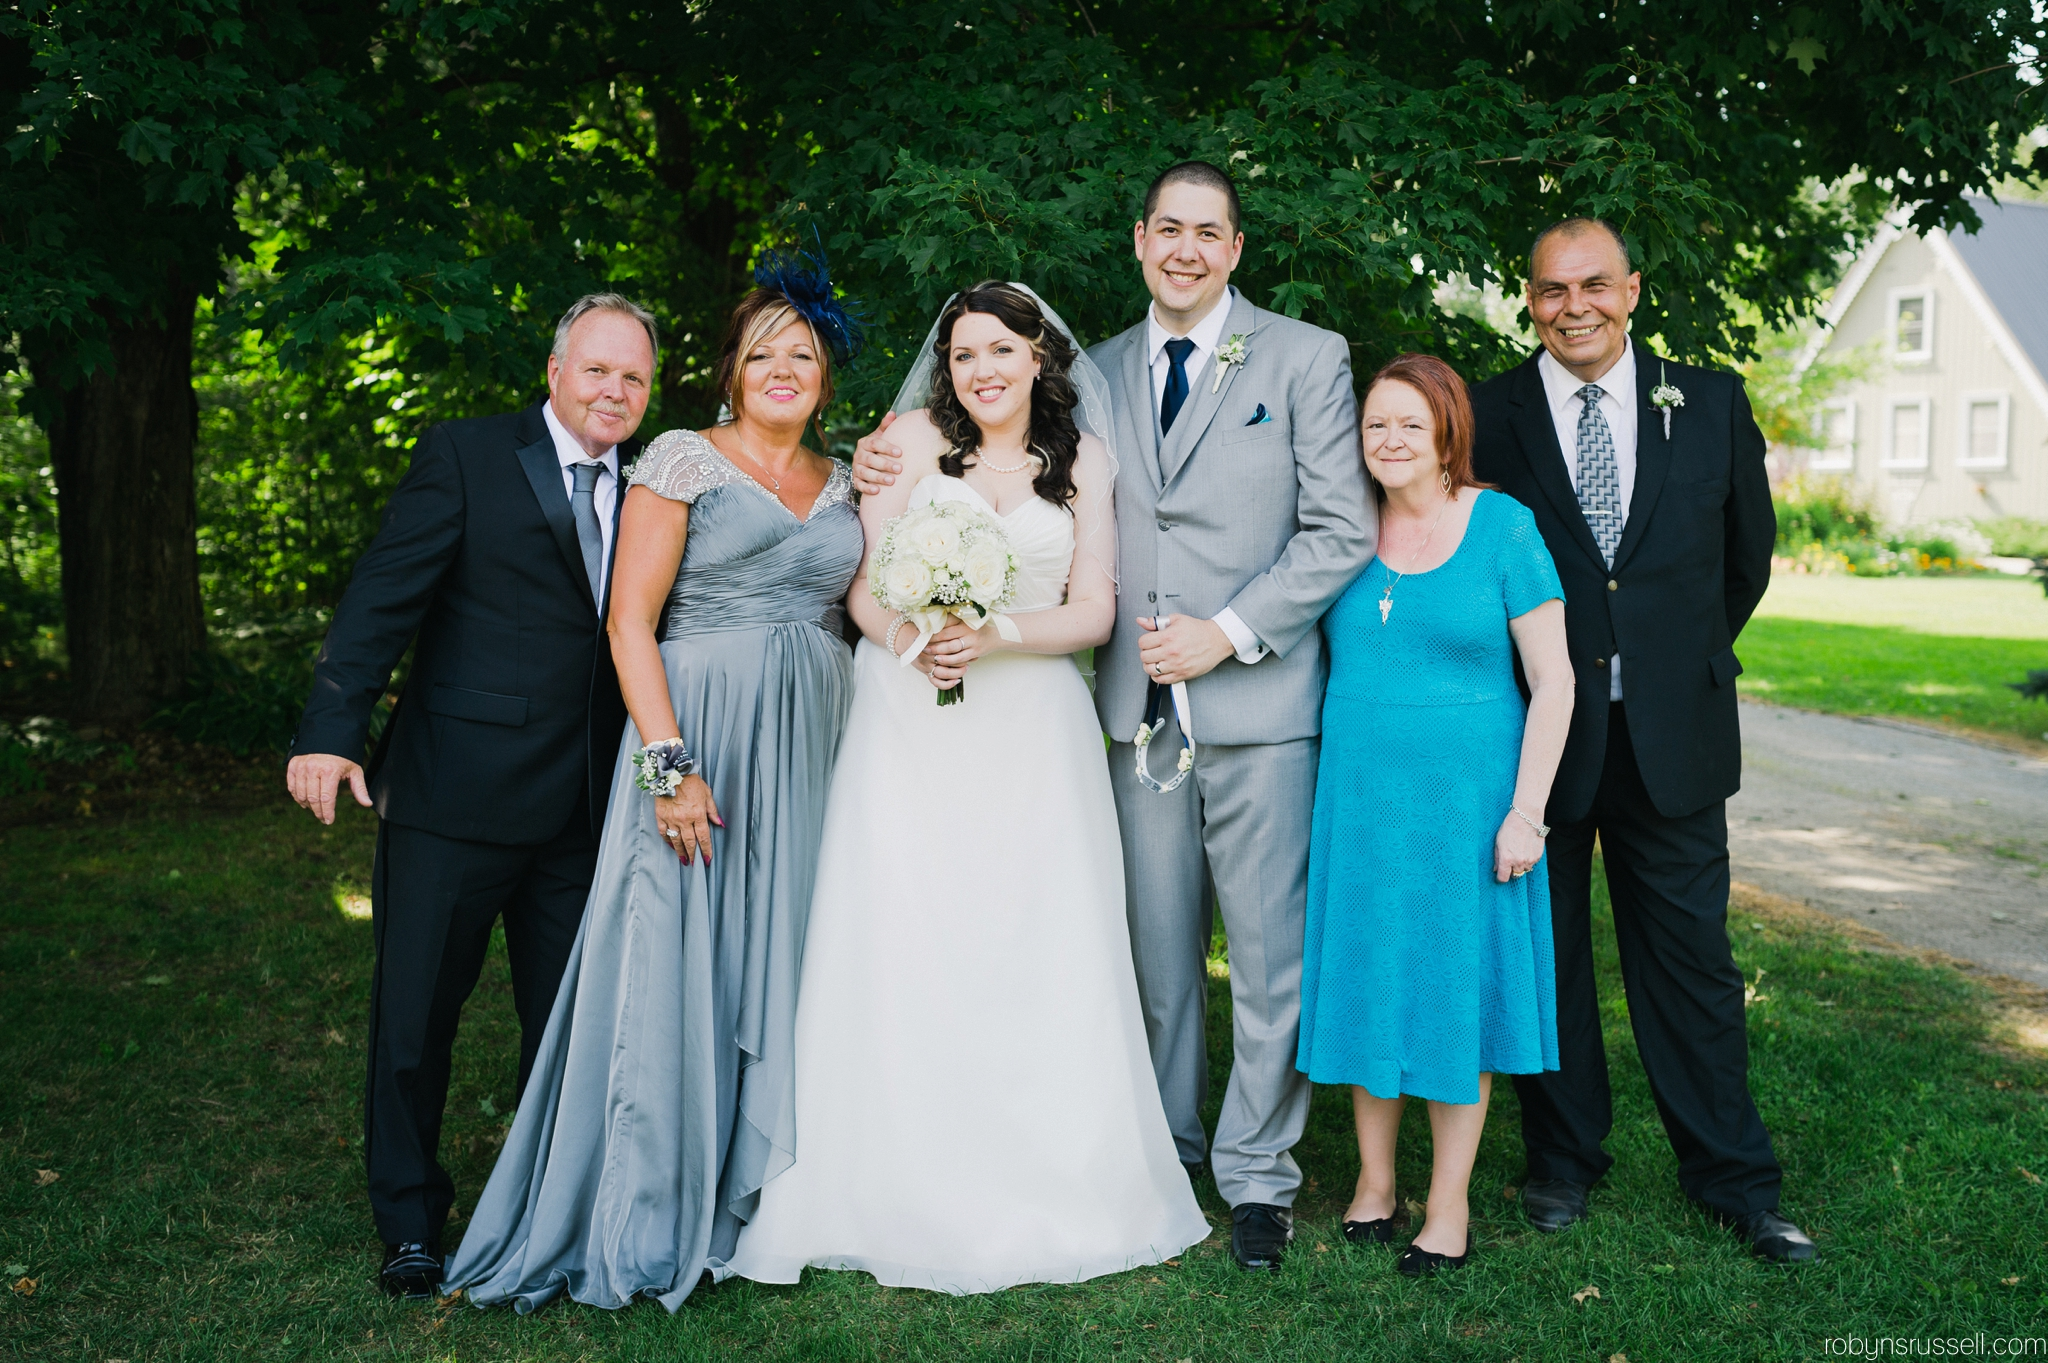 26-family-photos-barrie-wedding-photographer.jpg